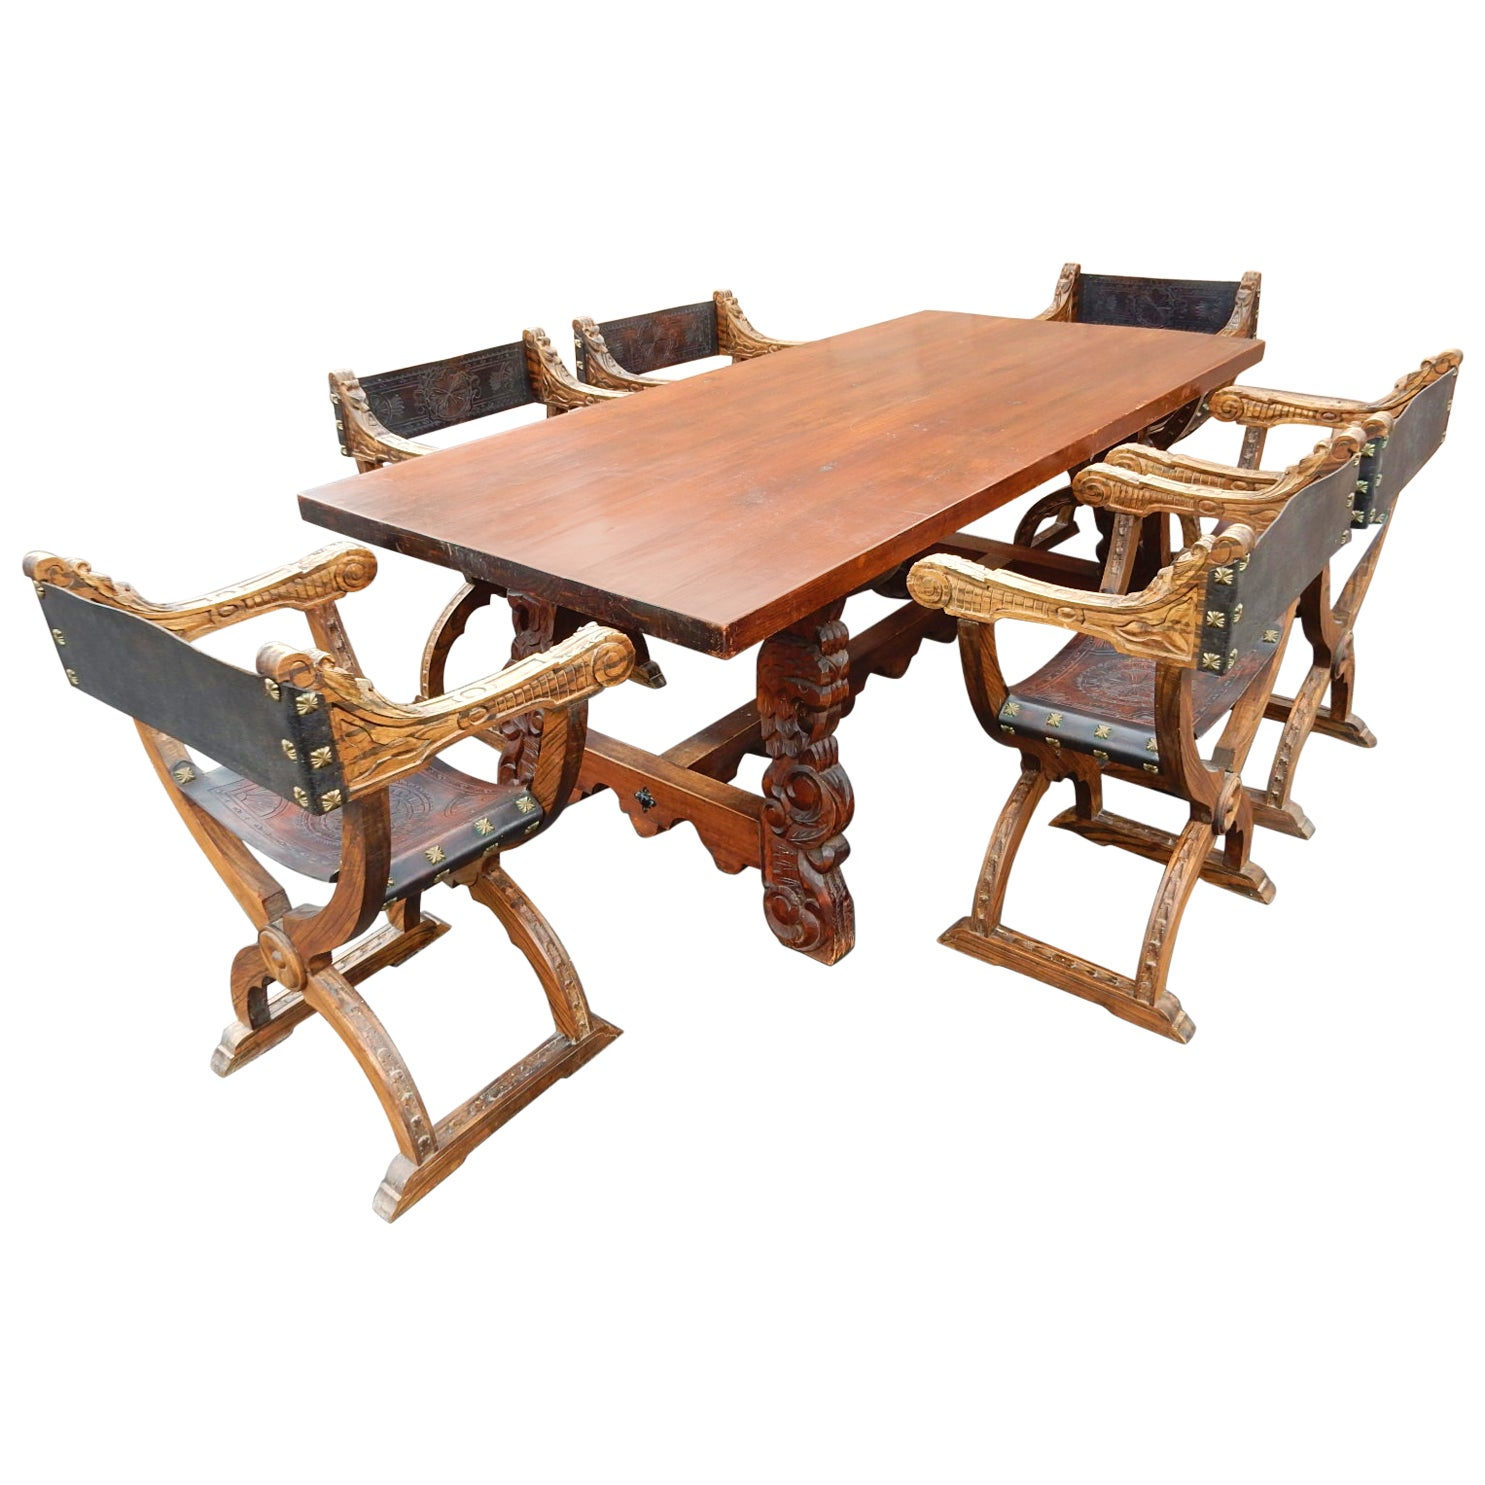 Spanish Colonial Dining Table With Six Elaborate Carved Wood And Leather Chairs For At 1stdibs